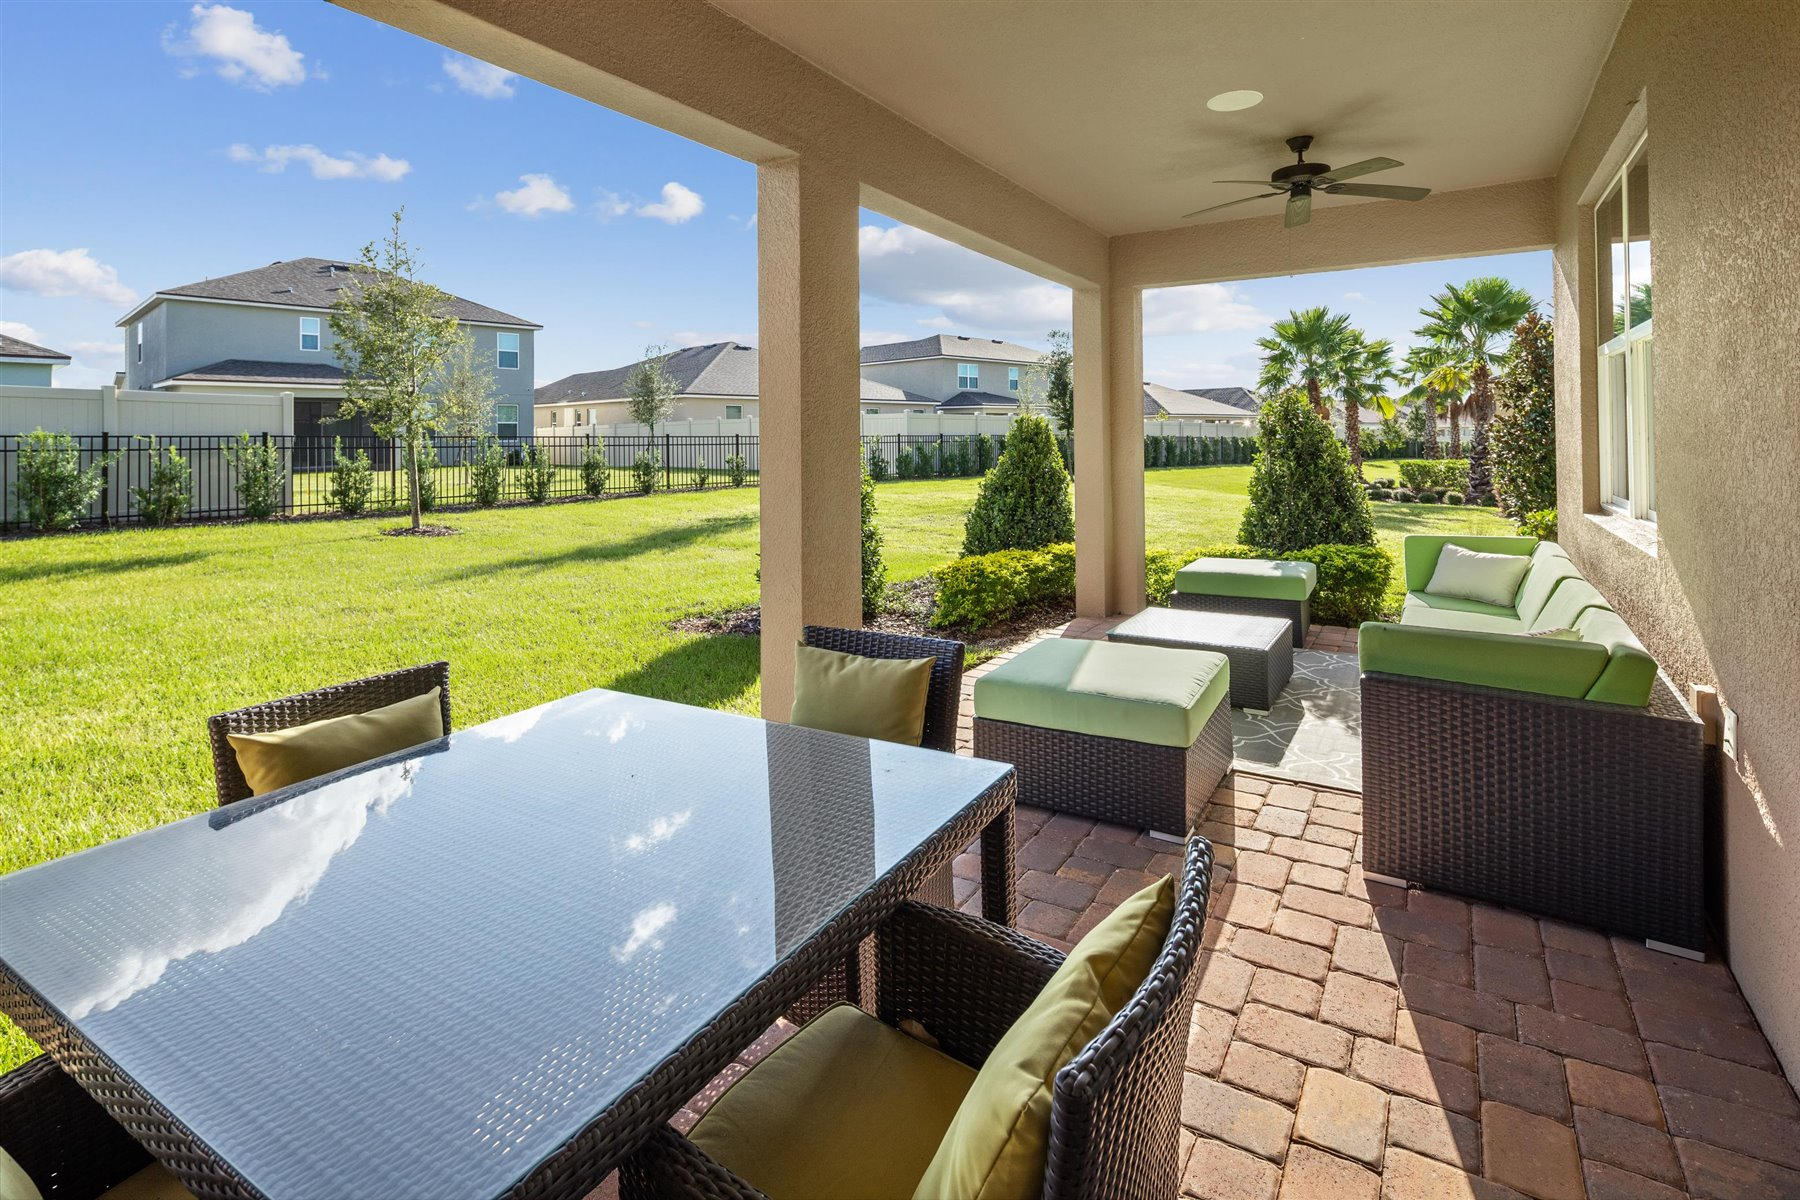 Crescent Plan Patio at Waterbrooke in Clermont Florida by Mattamy Homes